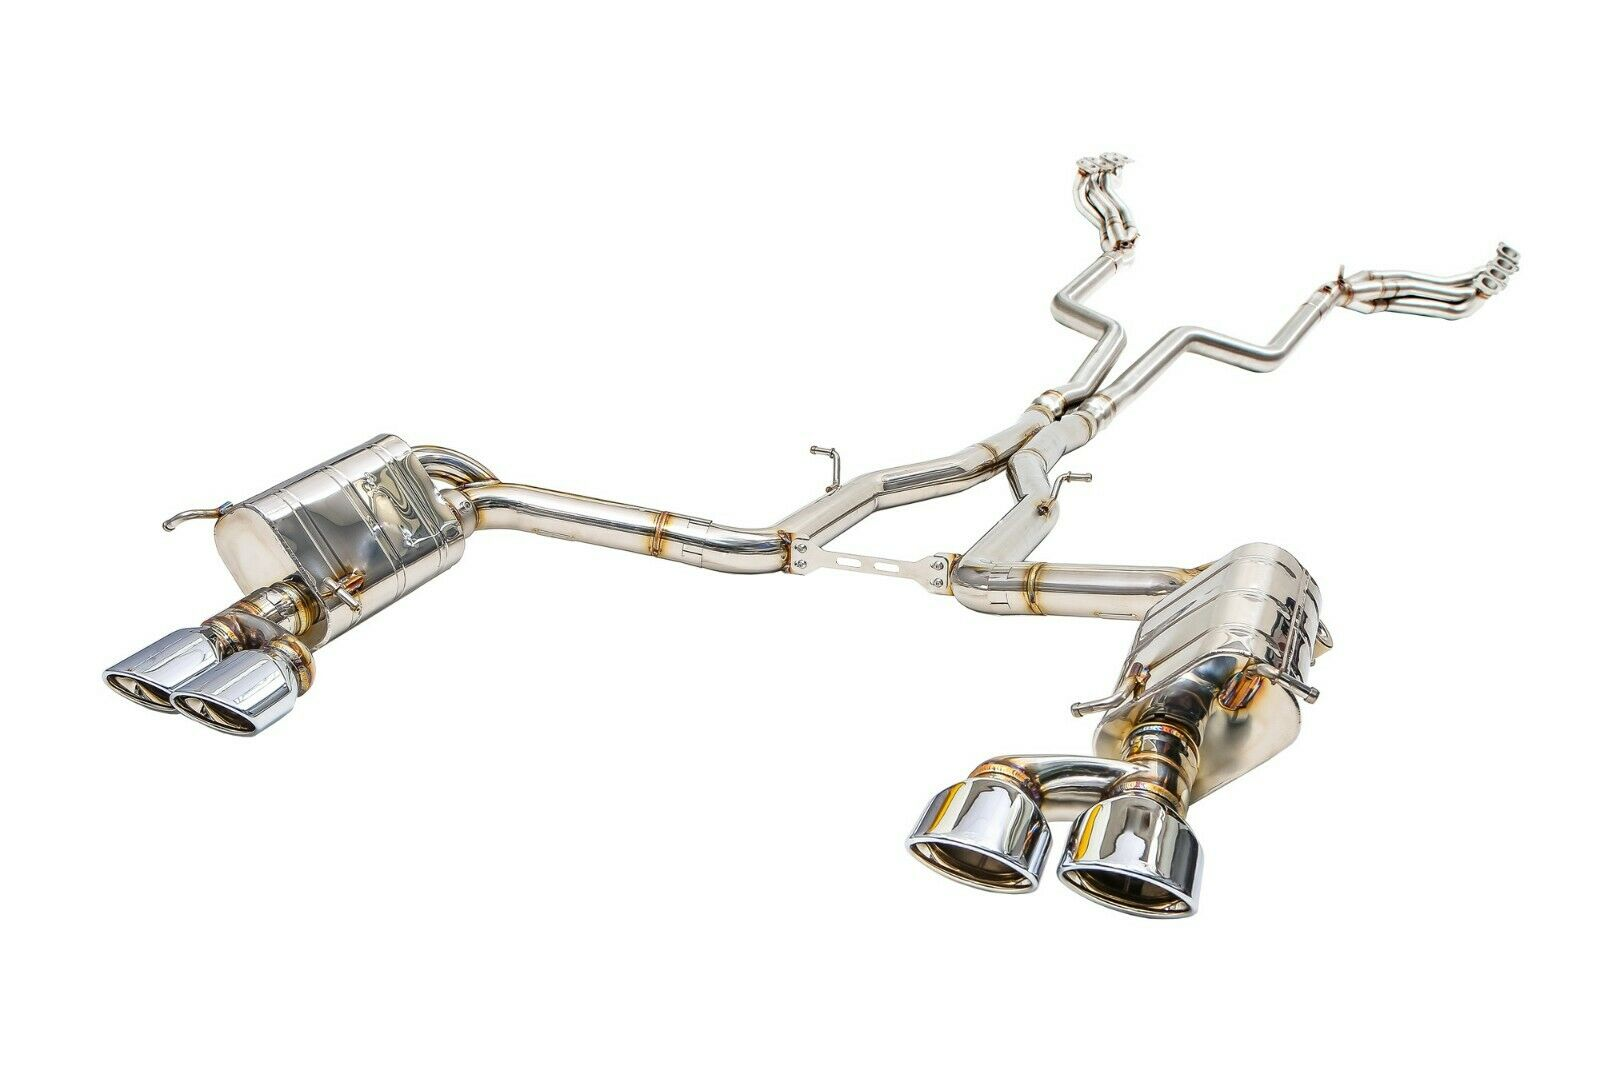 IPE Innotech F1 Exhaust FULL System for Mercedes Benz W204 C63 AMG